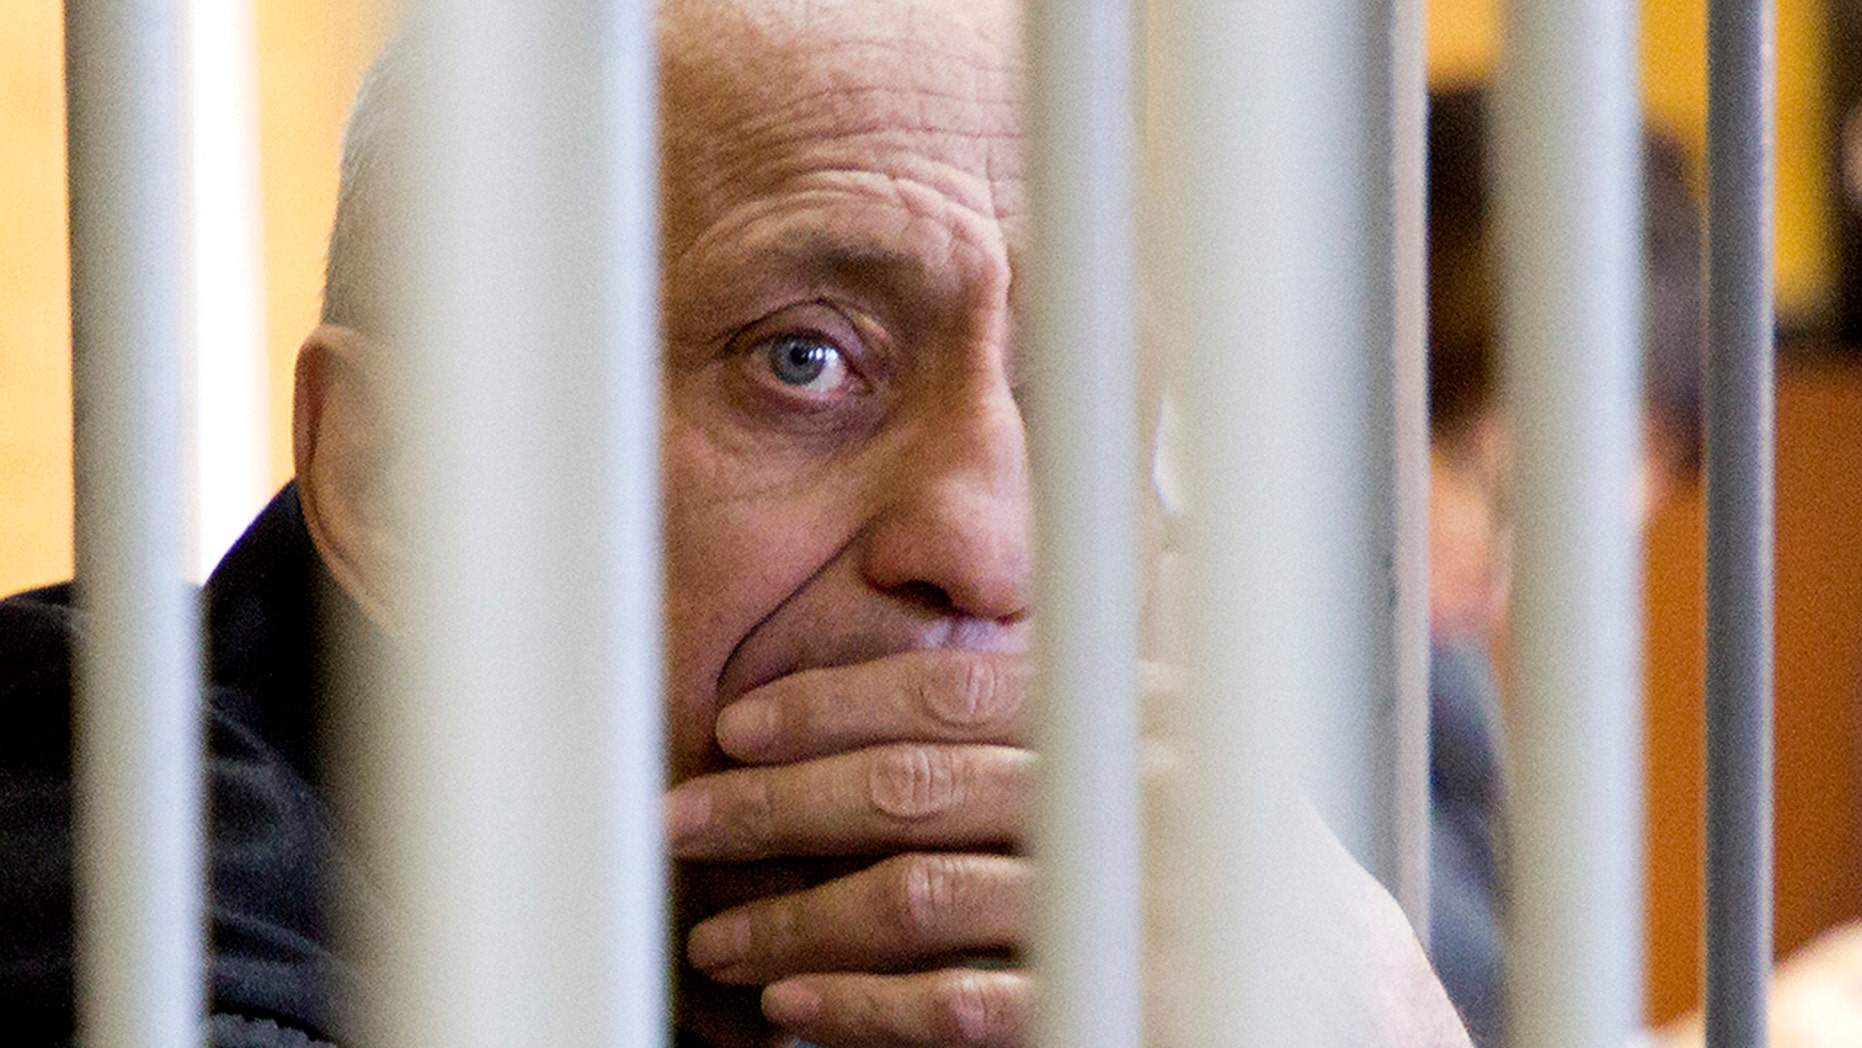 Russia's notorious 'Werewolf'serial killer convicted of another 56 murders